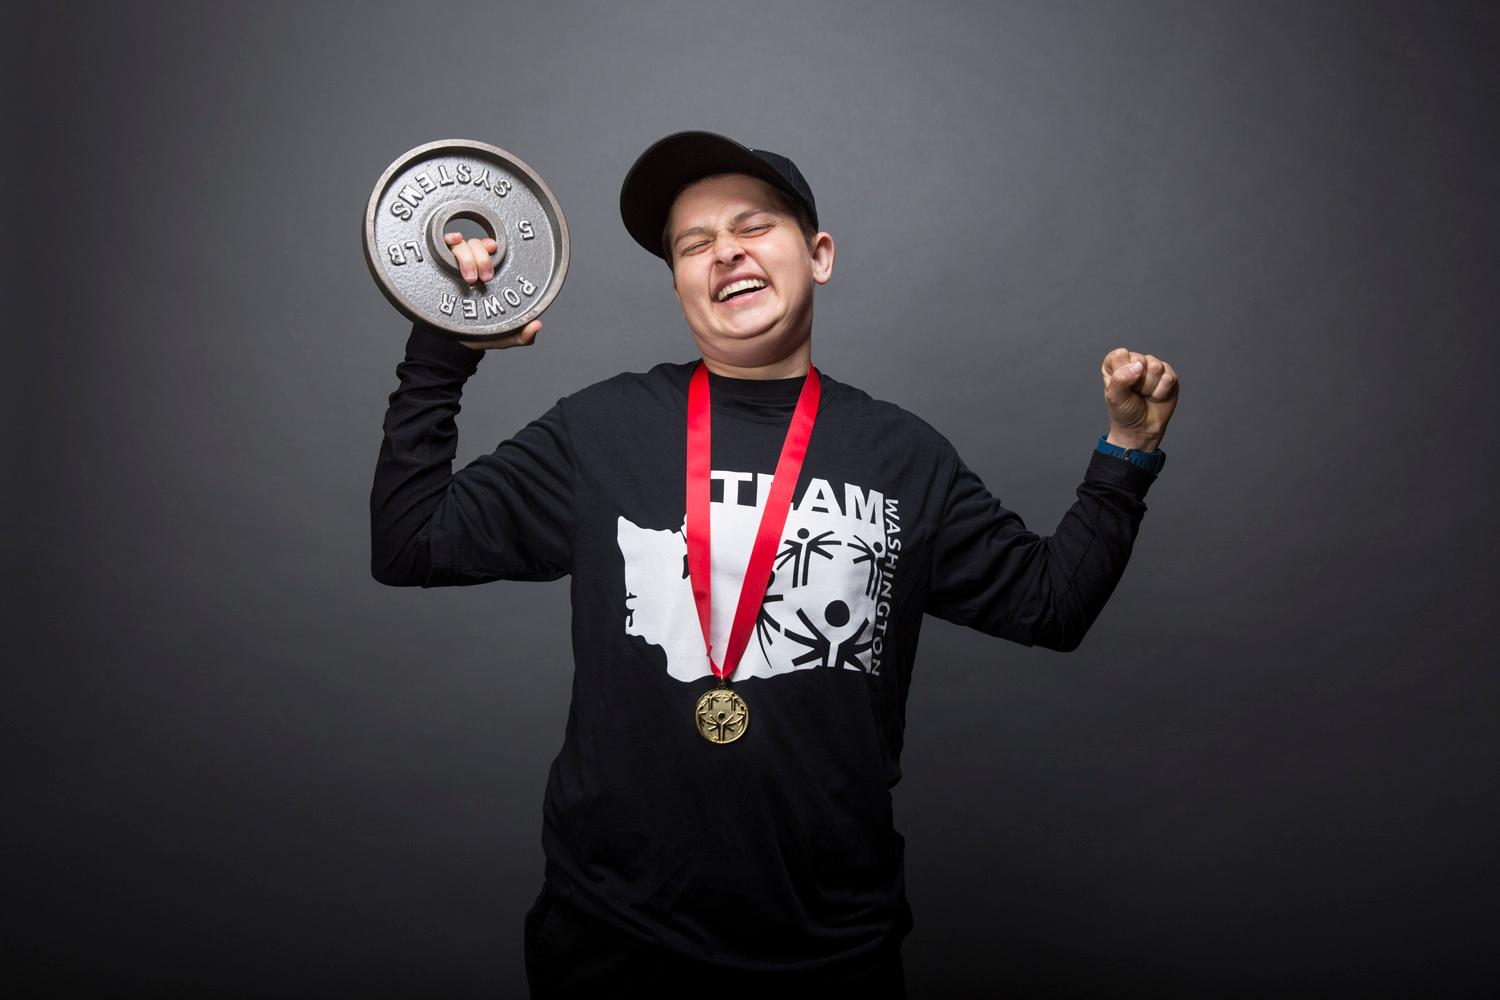 Introducing Jennifer Goodley! Jennifer will be competing in powerlifting. The Special Olympics USA will take place in Seattle from July 1-6, with a grand opening ceremony and Parade of Athletes and the lighting of the Special Olympics Flame of Hope. (Sy Bean / Seattle Refined)